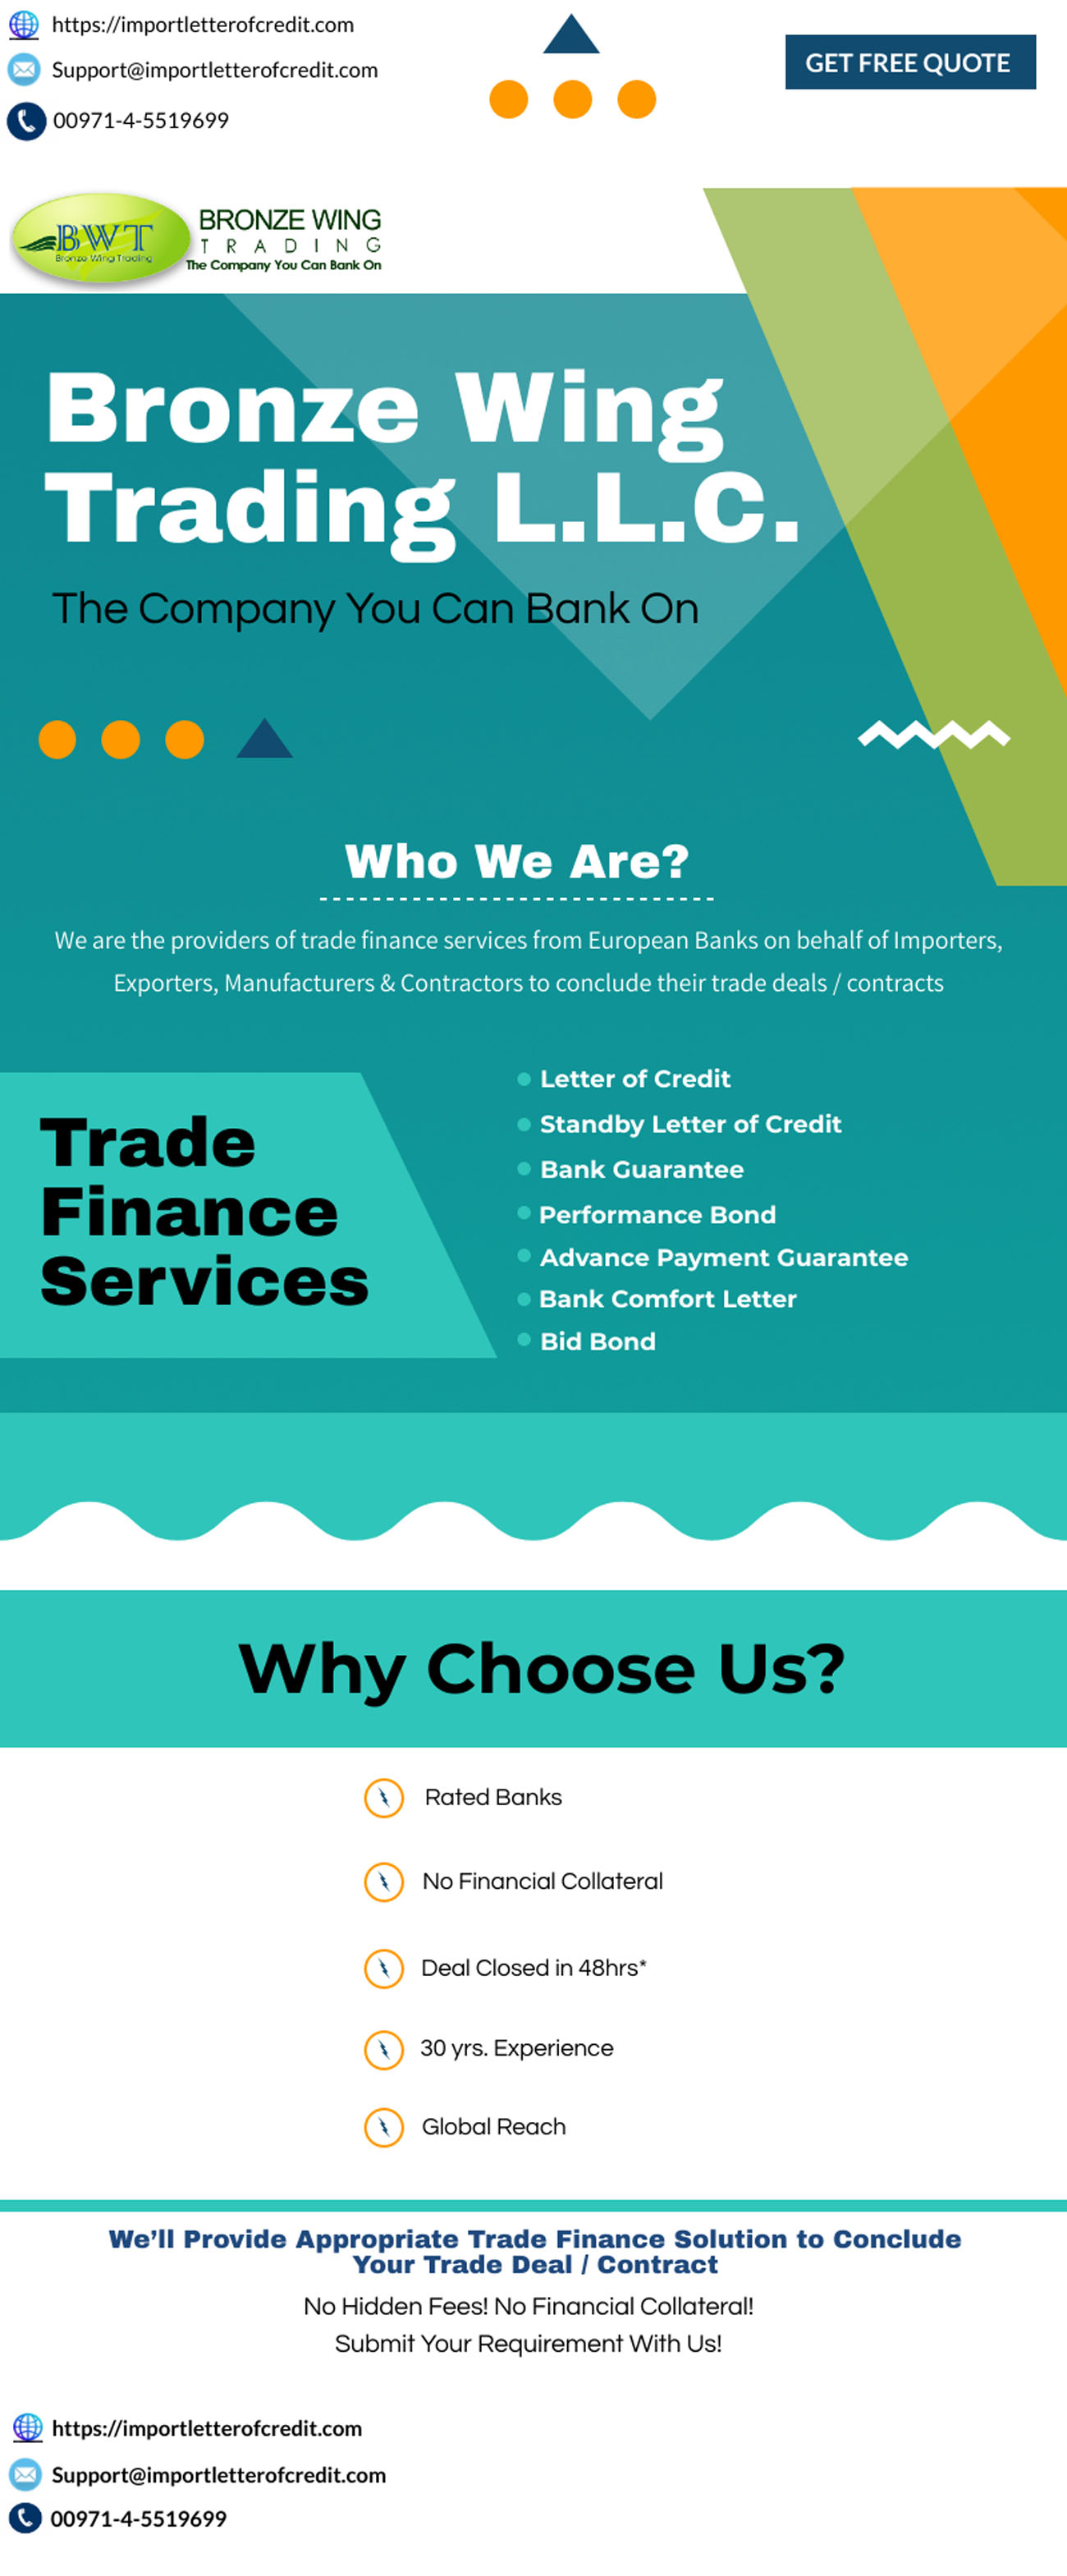 Bronze Wing Trading L.L.C. – Get LC, SBLC, BG From Rated Banks!